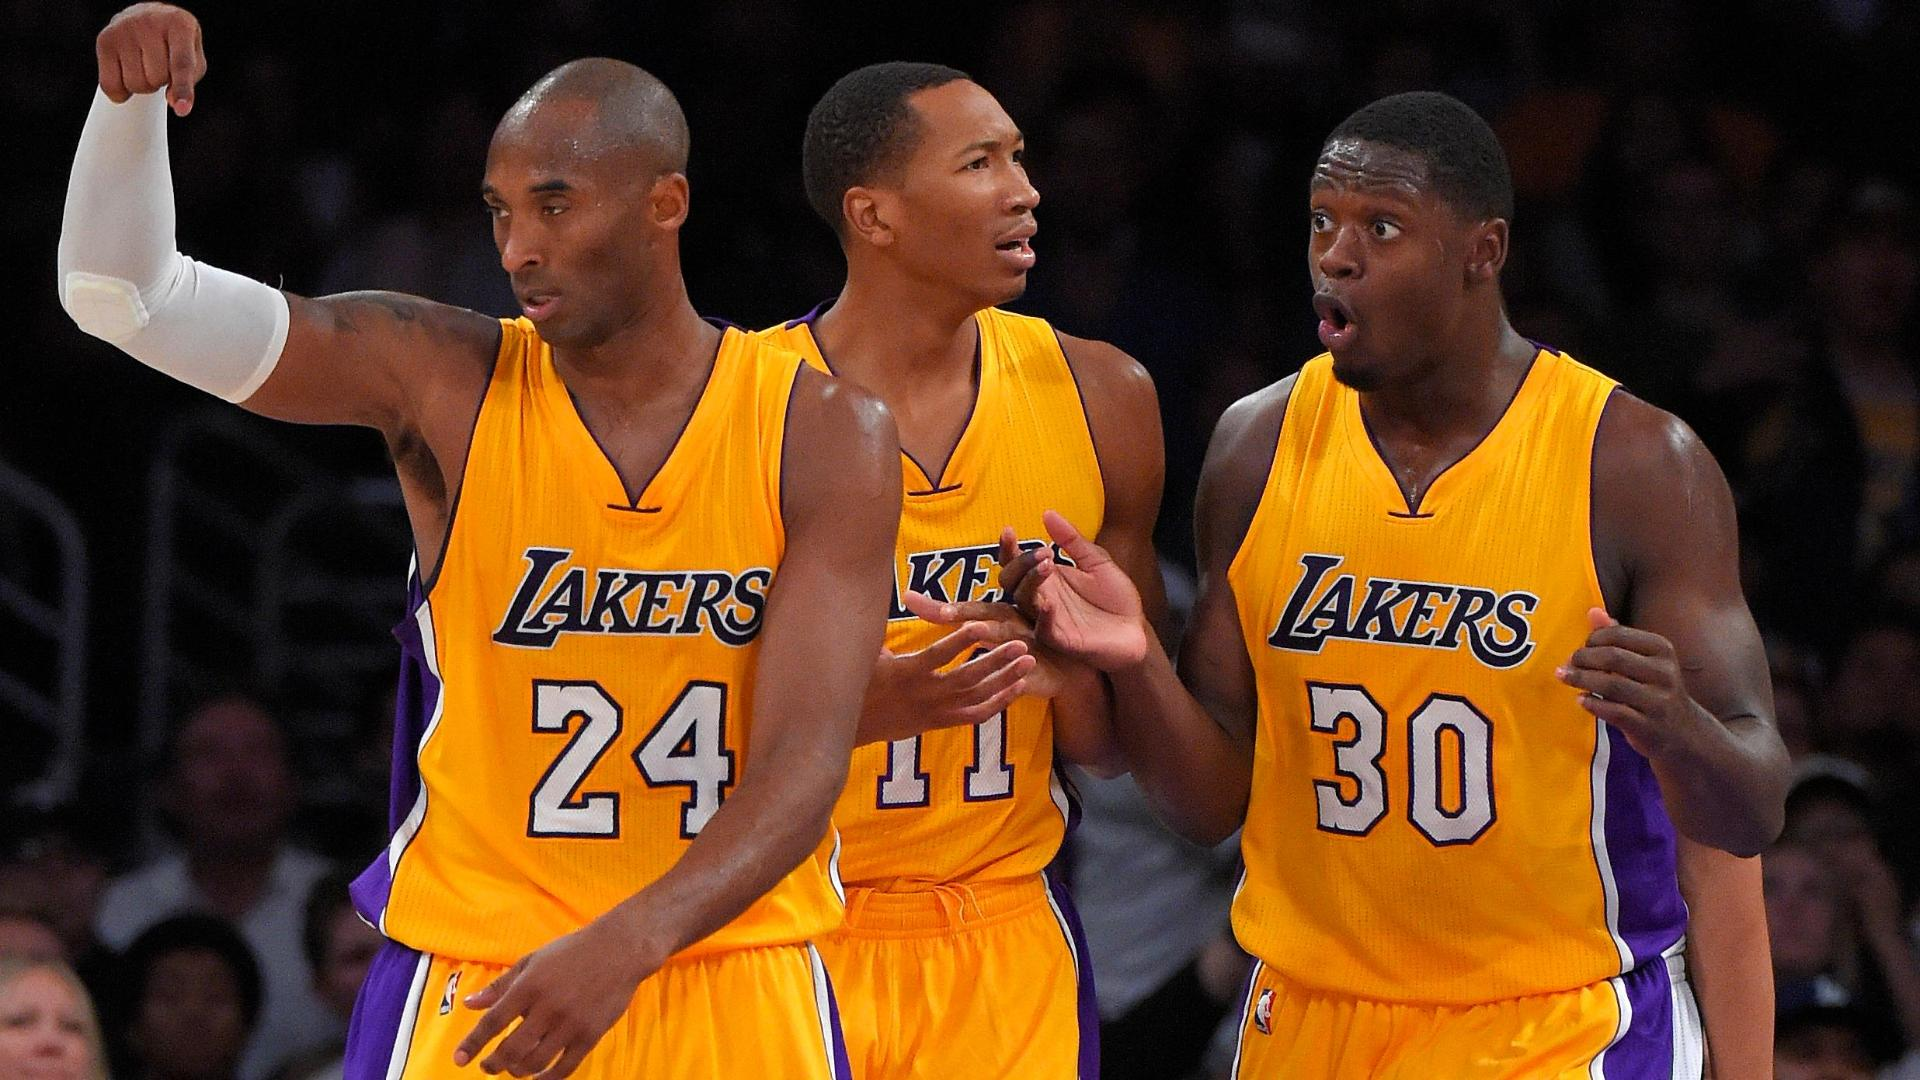 Randle talks about facing Kobe one-on-one